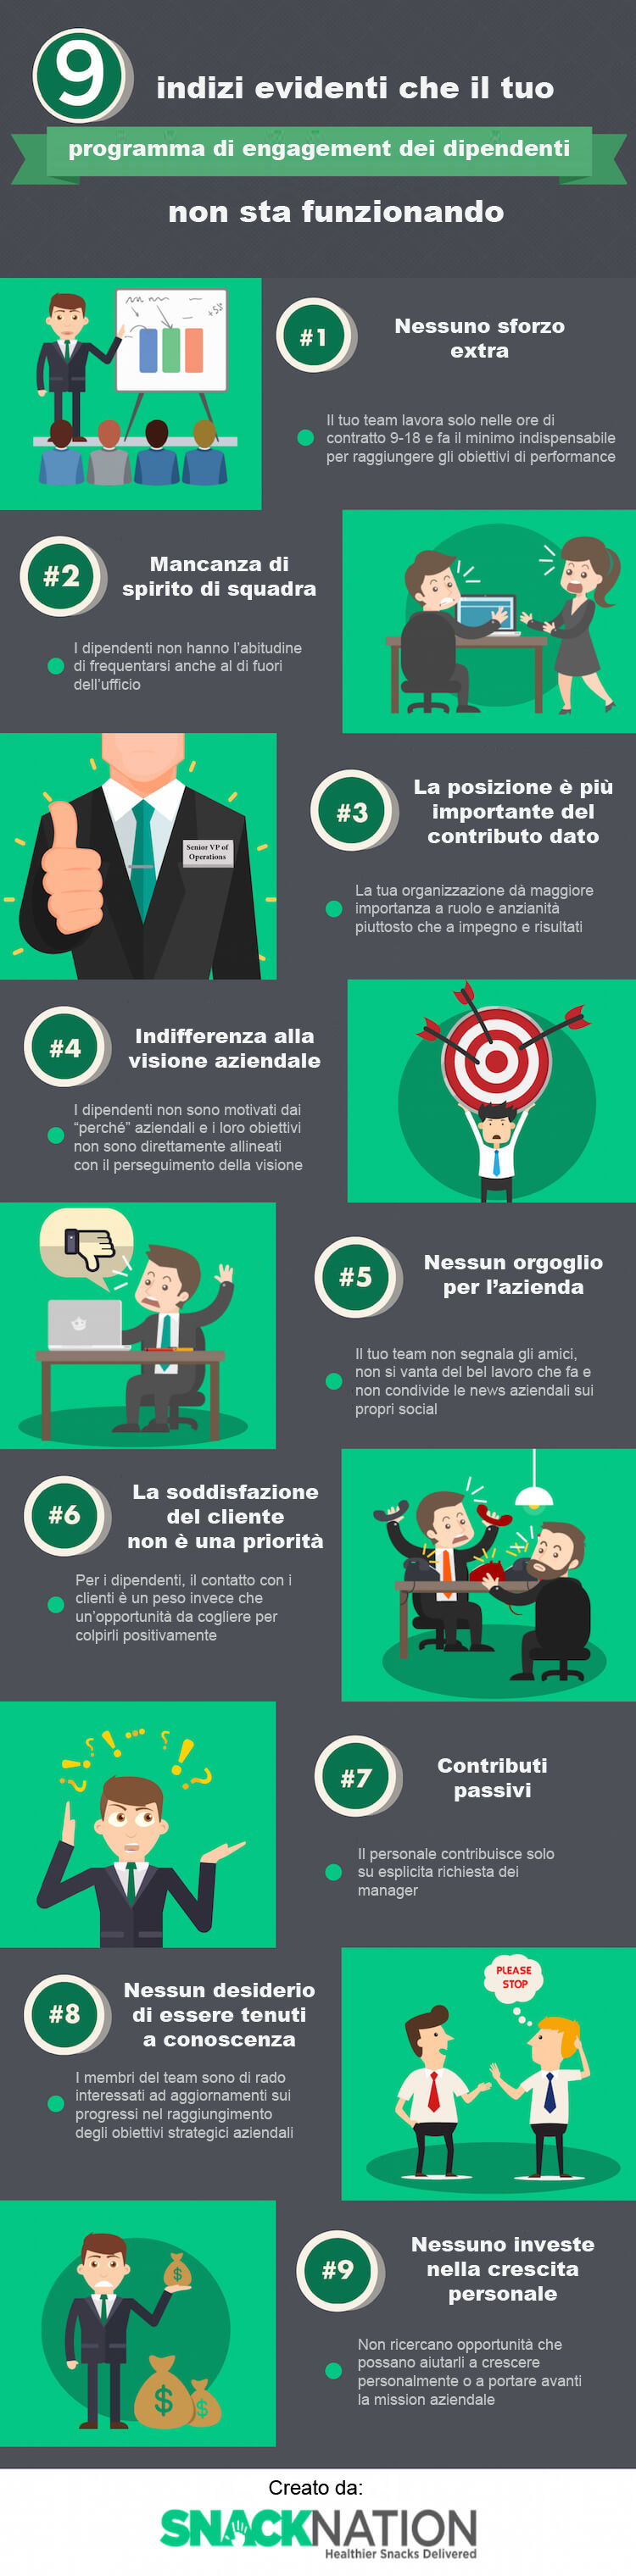 infografica engagement dipendenti